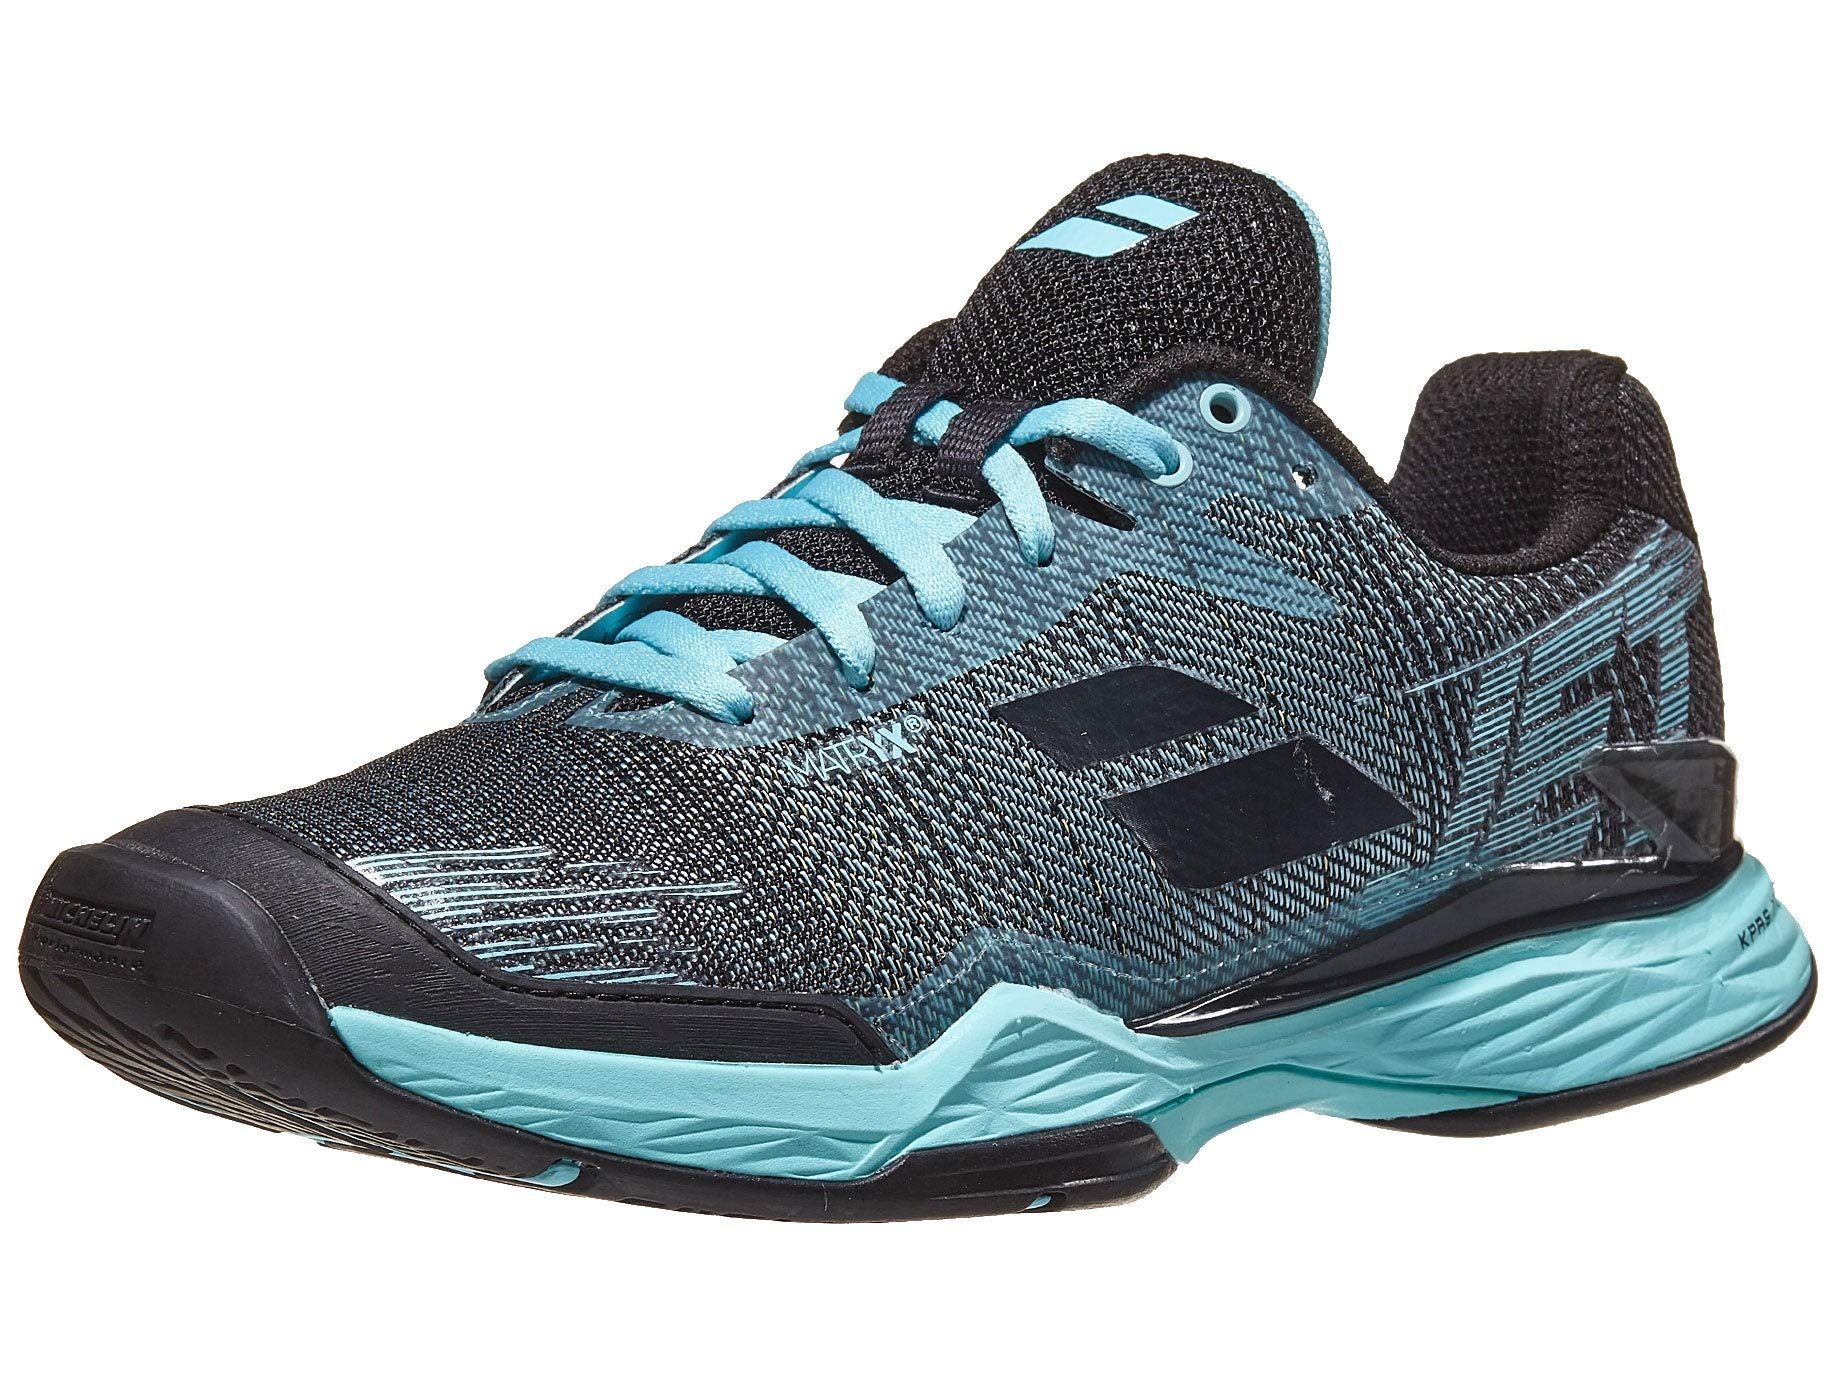 Babolat Women's Jet Mach II All Court Tennis Shoes, Angel Blue/Black (Size 8 US) by Babolat